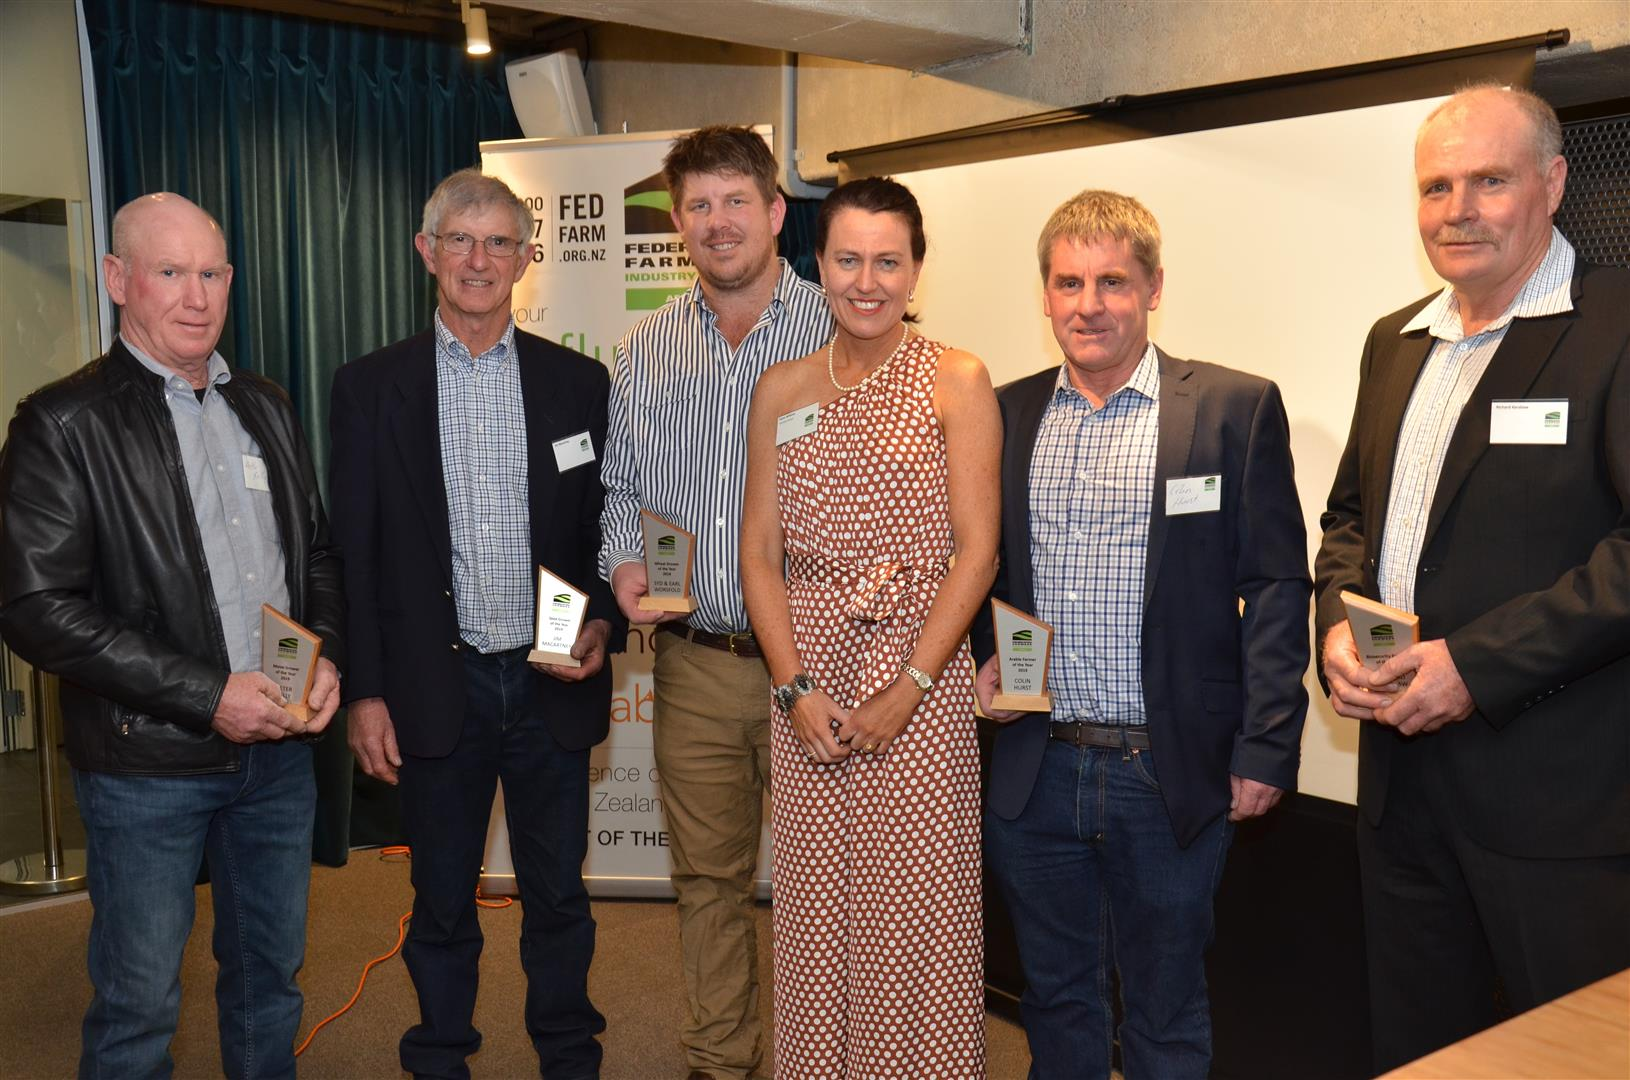 Winners at the Federated Farmers Arable Industry Group 2019 Awards (from left) Peter Kelly, Jim Macartney, Earl Worsfold, Colin Hurst and Richard Kershaw with arable group chairwoman Karen Williams. Photo: Supplied